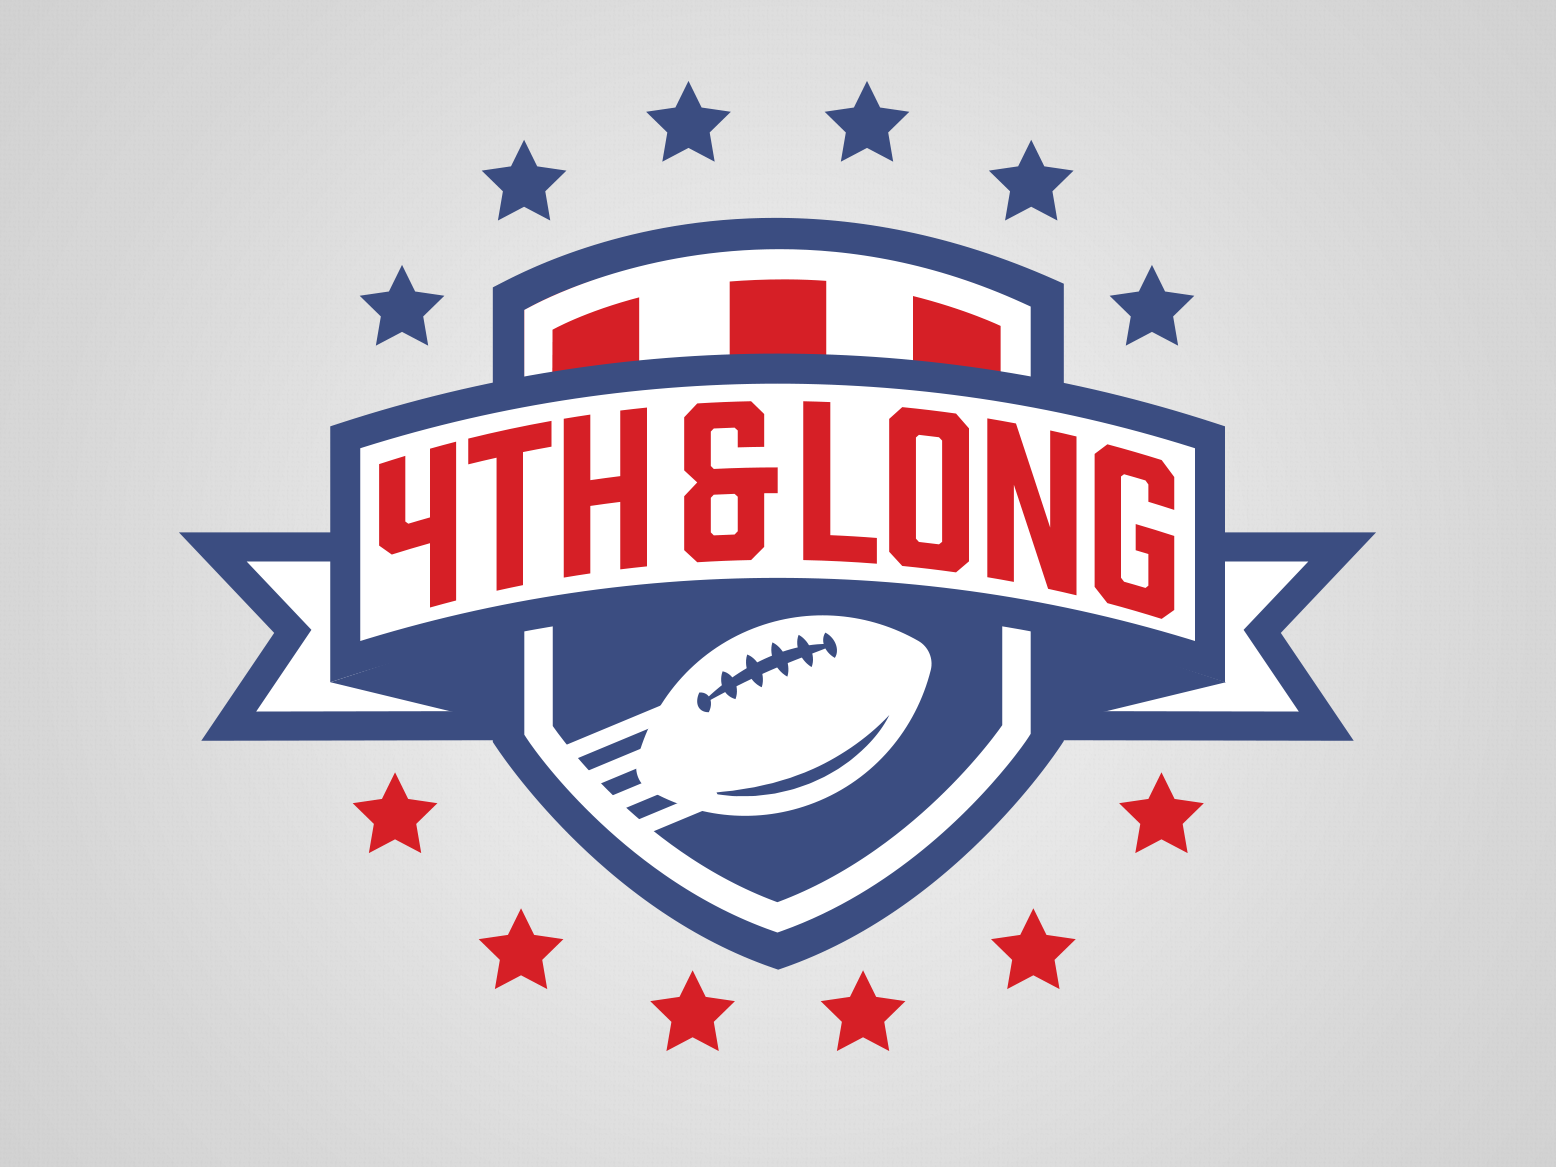 4th and Long Fantasy Football League Shield by Ben Rush on.